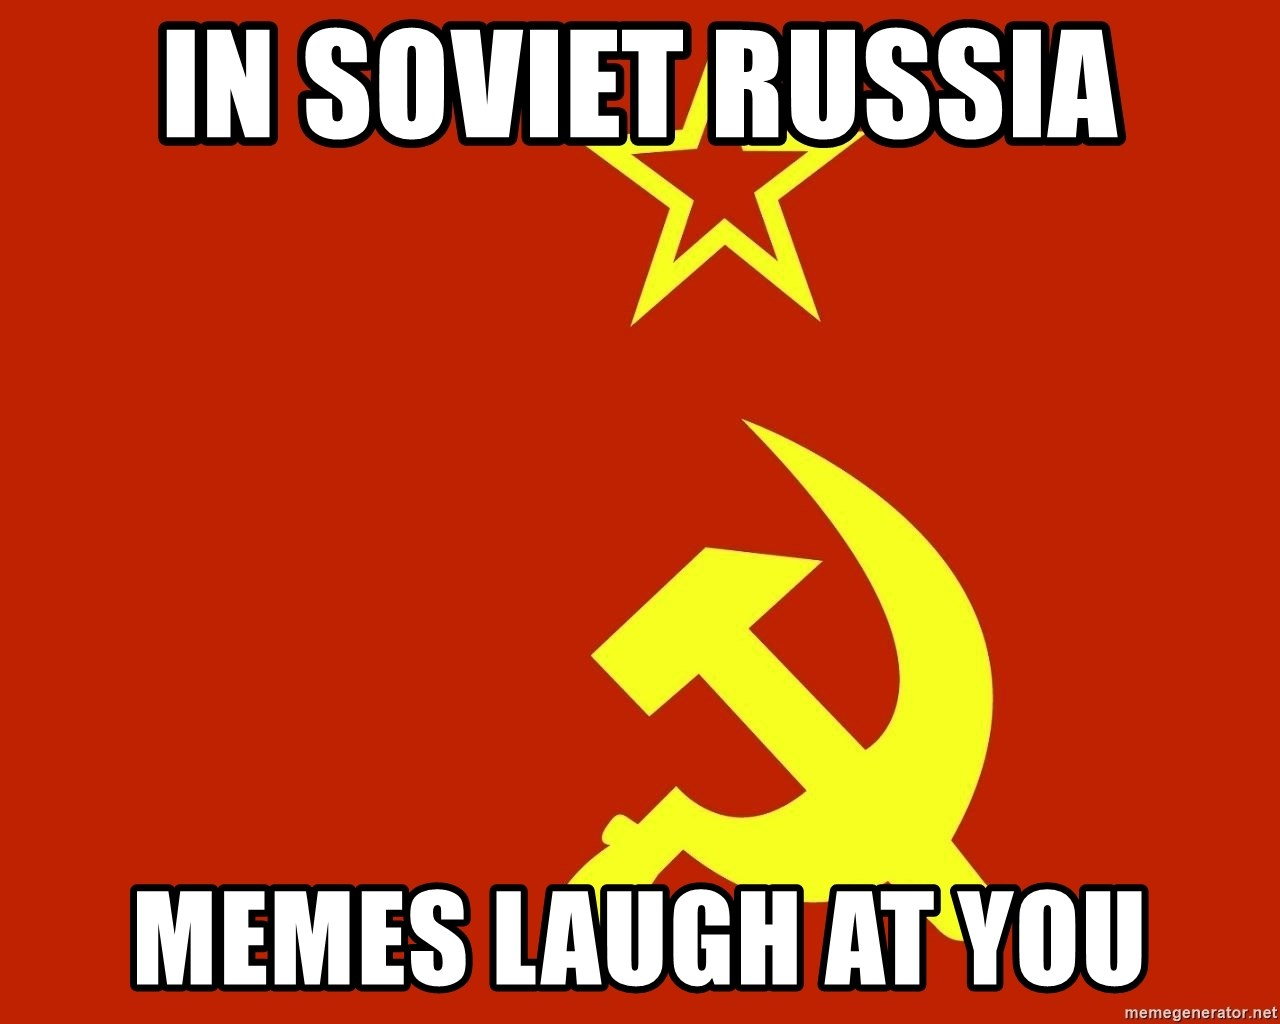 In Soviet Russia - In Soviet Russia Memes laugh at You